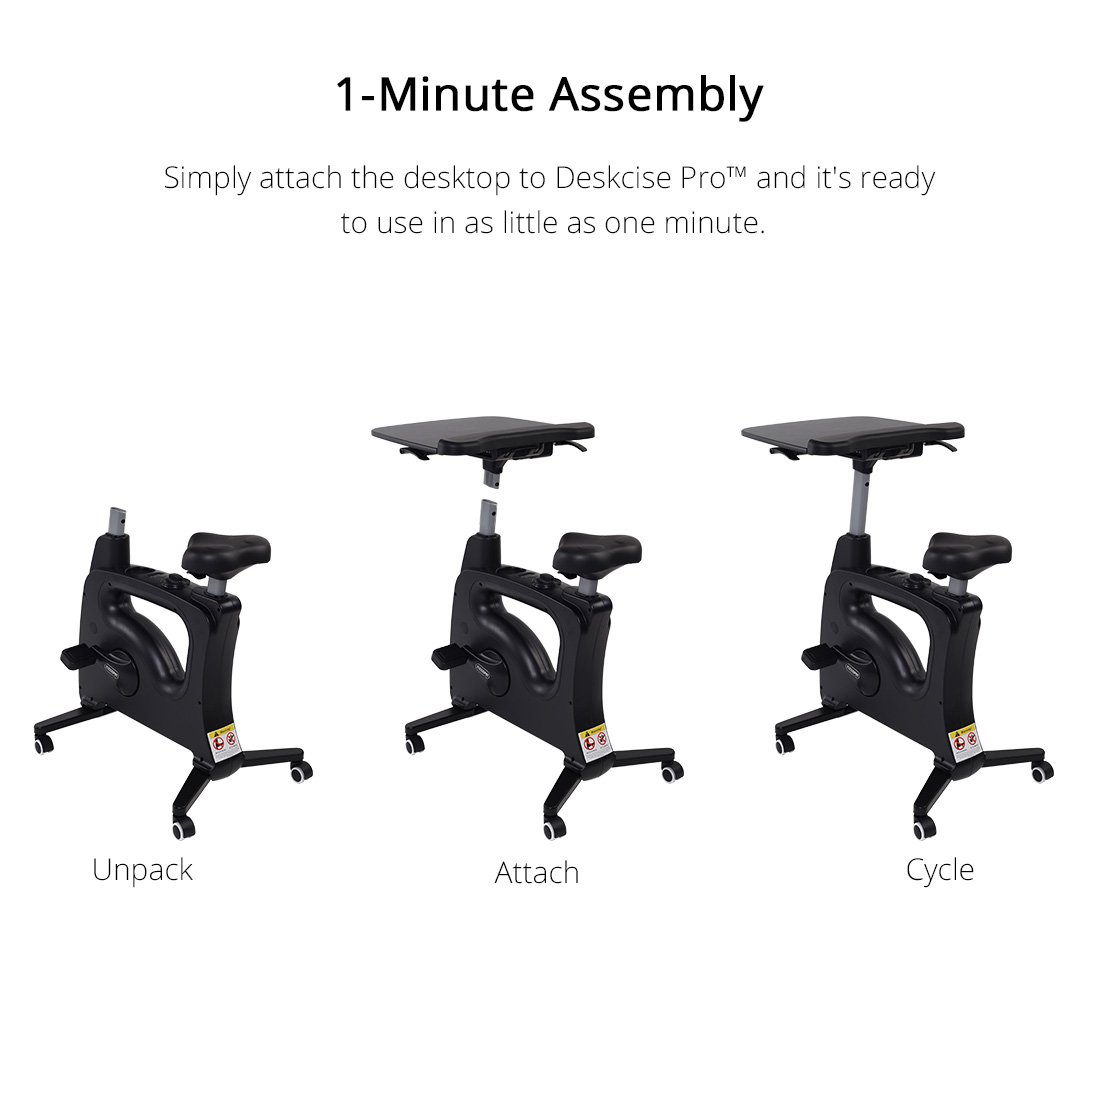 FLEXISPOT Home Office Upright Stationary Fitness Exercise Cycling Bike Height Adjustable Standing Desk - Deskcise Pro Black by FLEXISPOT (Image #3)